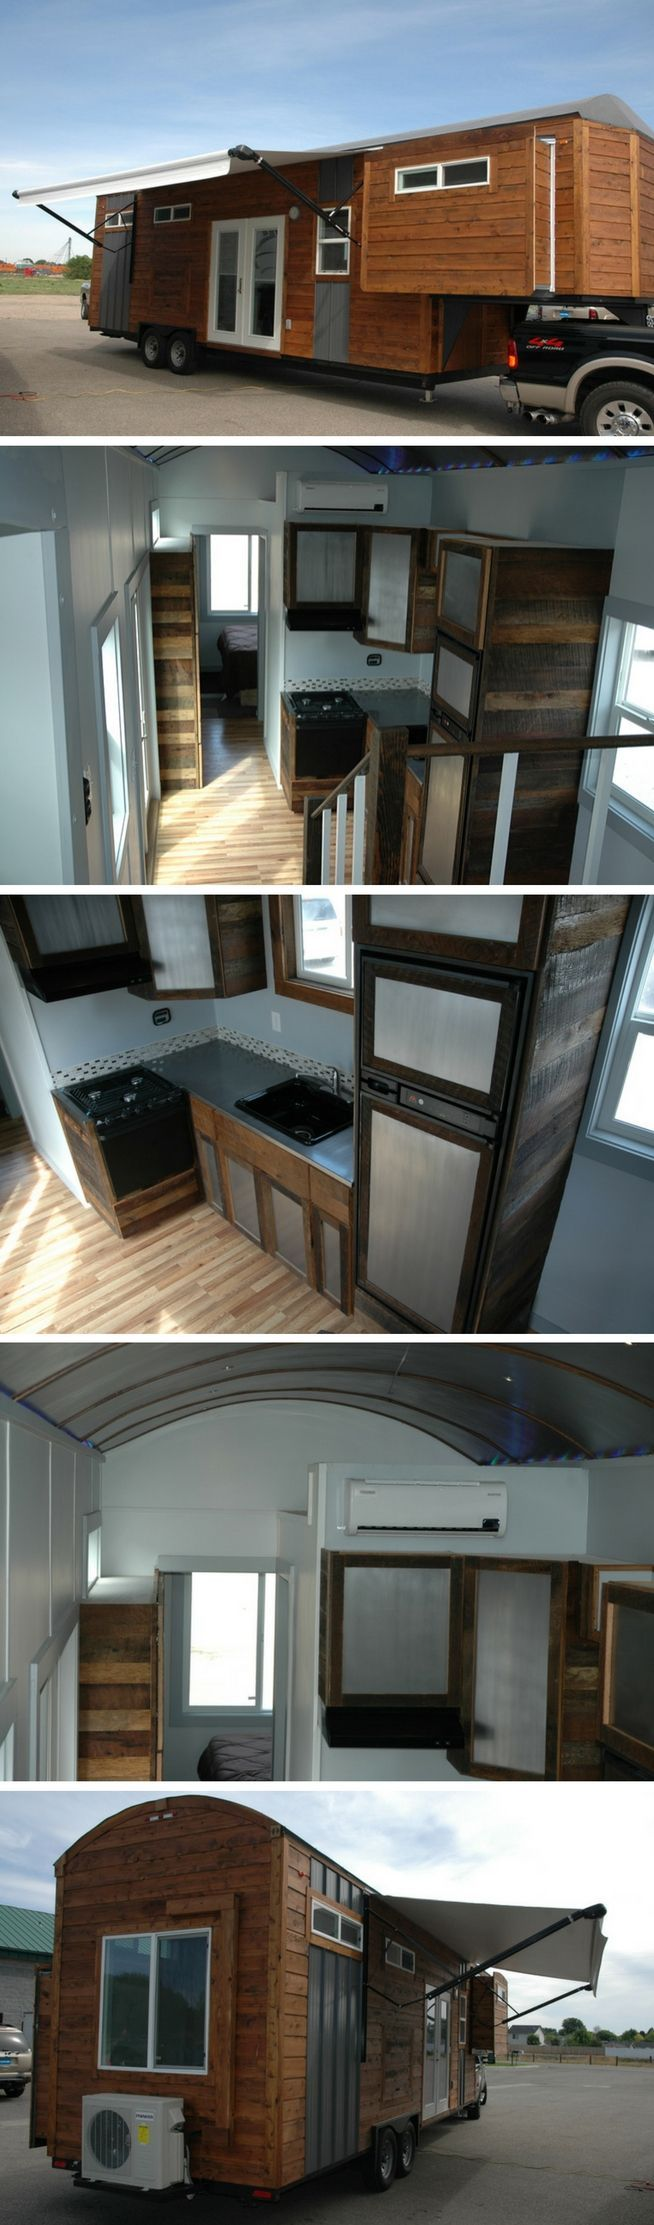 nampa house a 320 sq ft tiny house on wheels - Tiny House On Wheels Plans